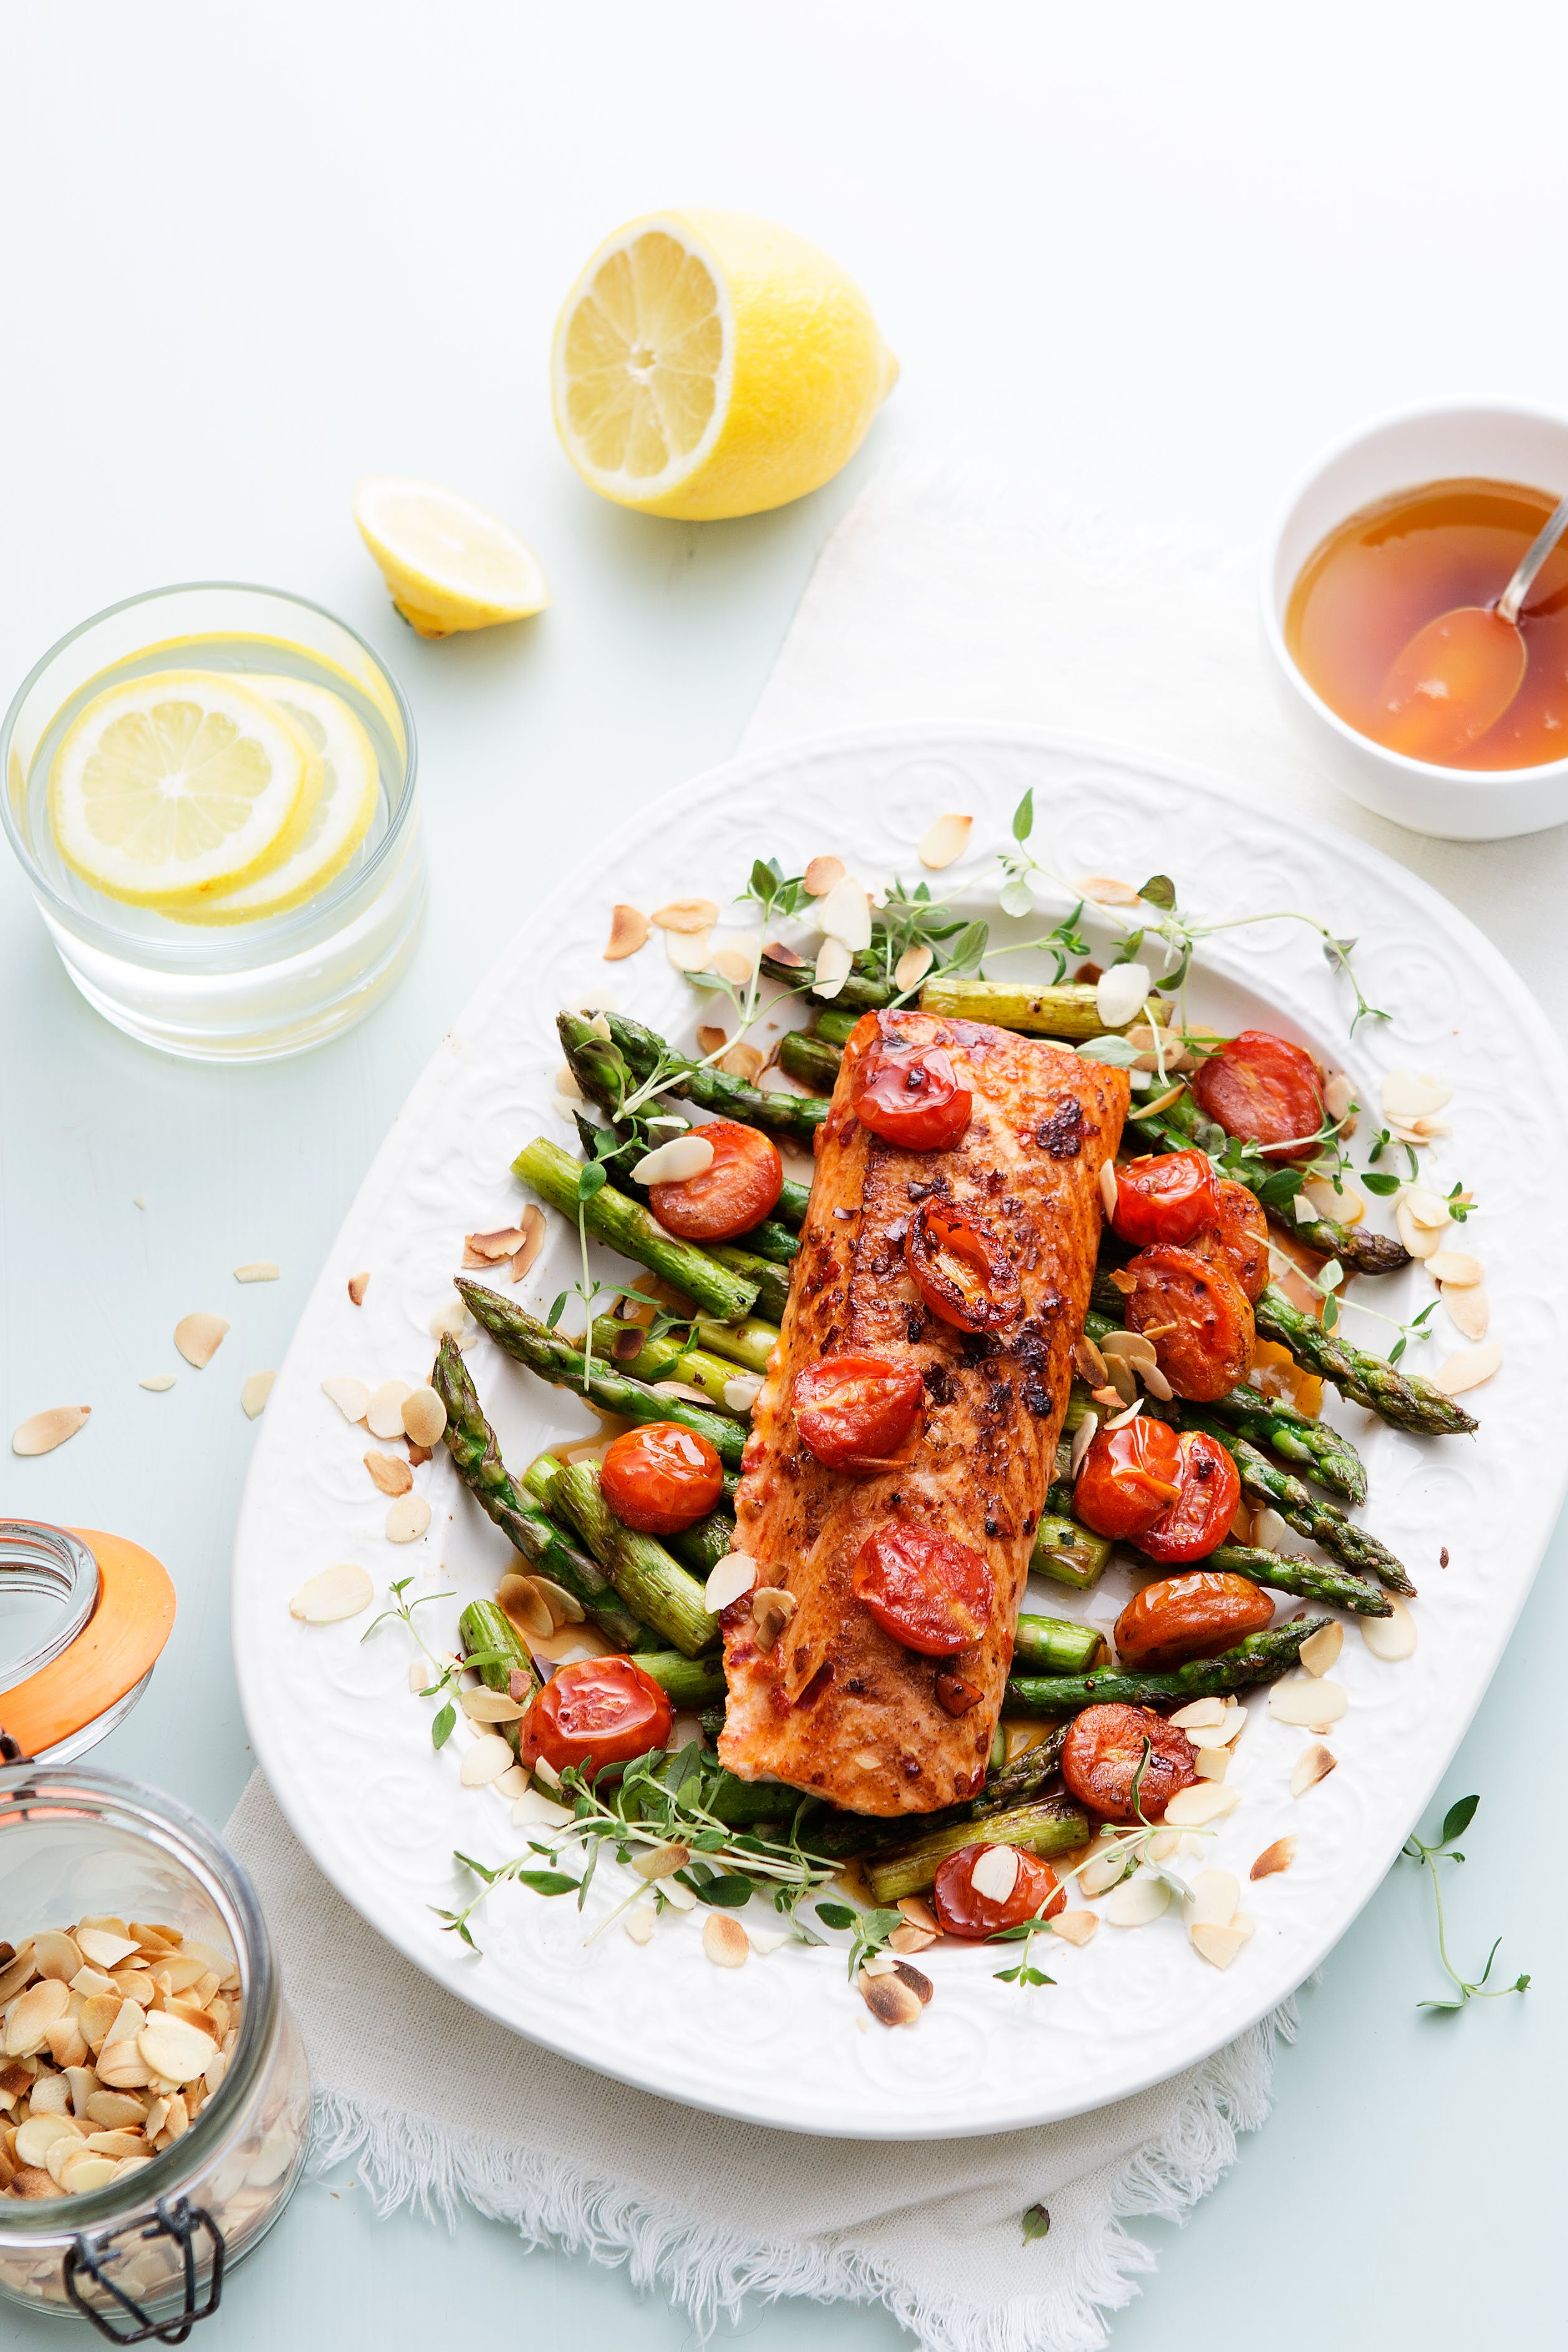 Keto chili salmon with tomato and asparagus